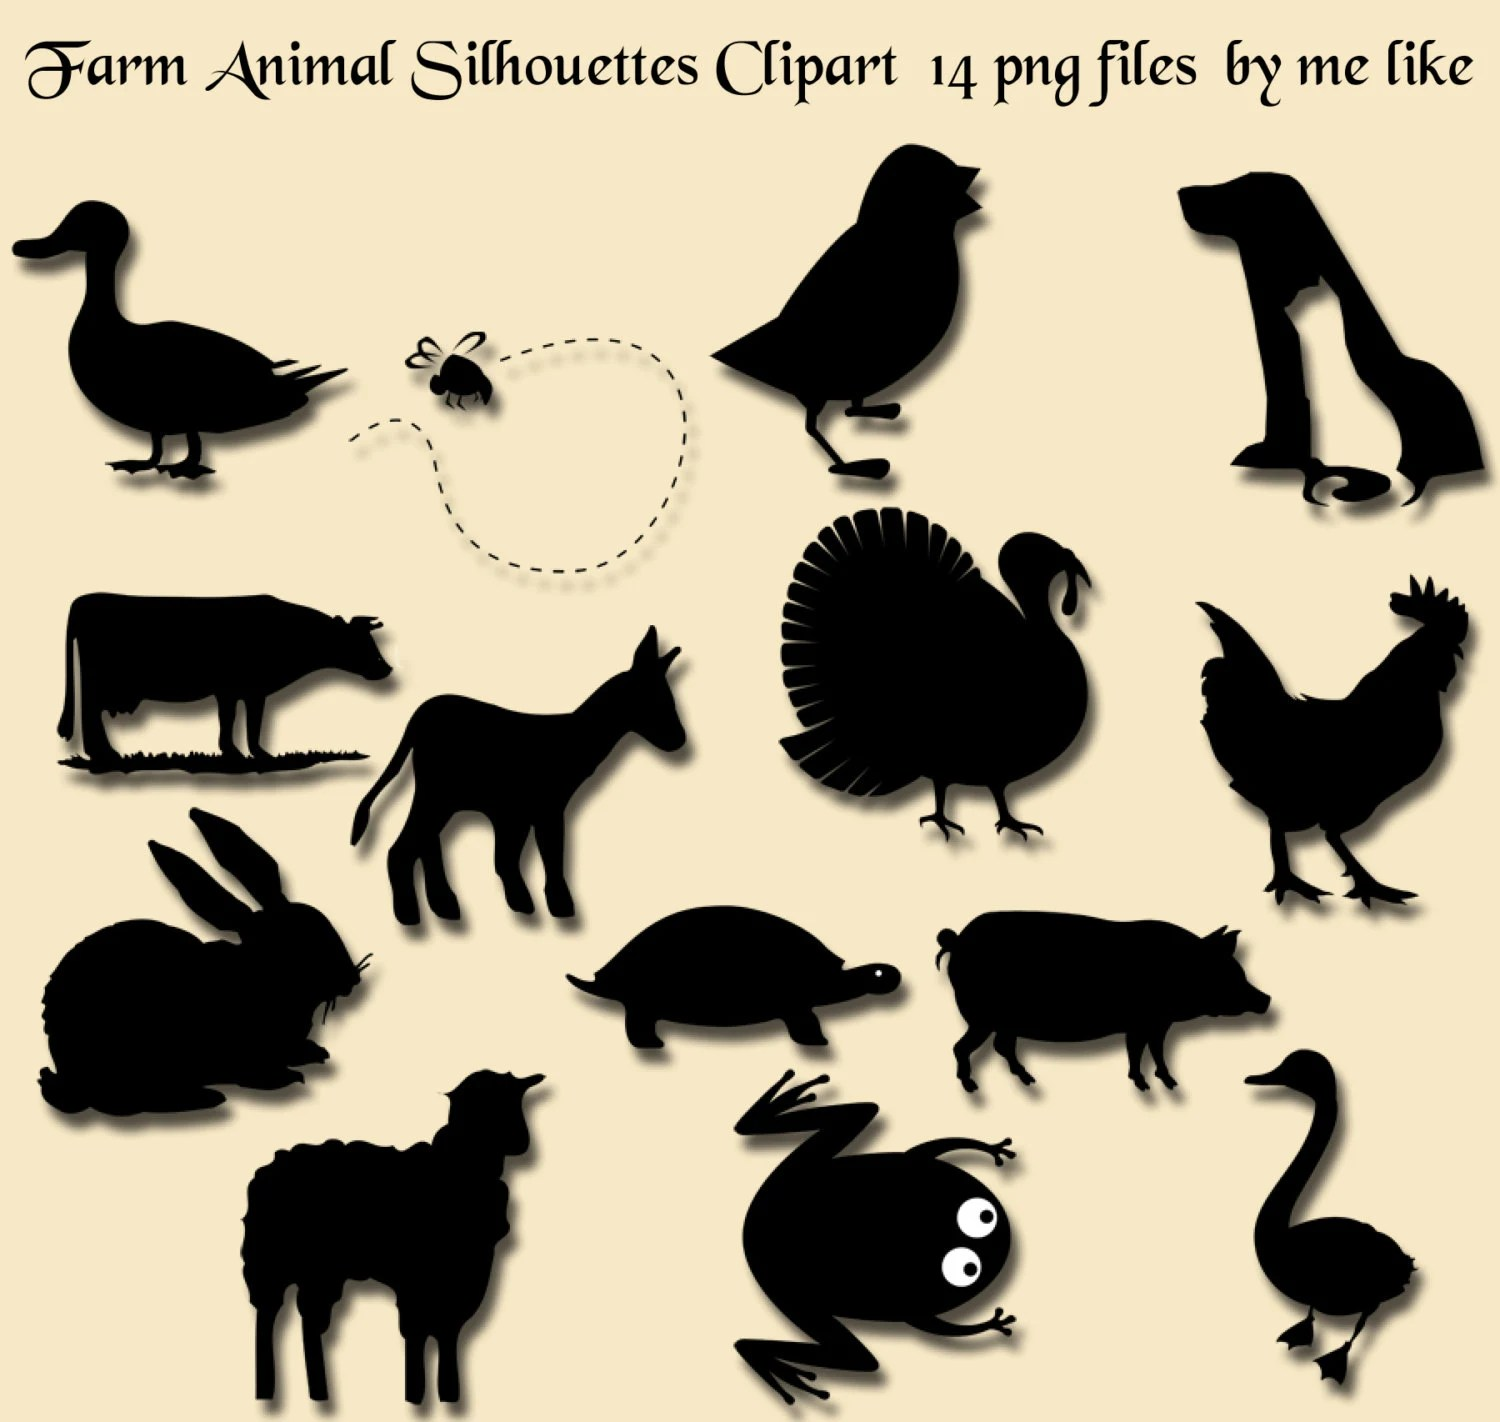 medium resolution of farm animal silhouettes clip art instant download 14 individual png files clipart for personal or commercial use 300 dpi embellishment